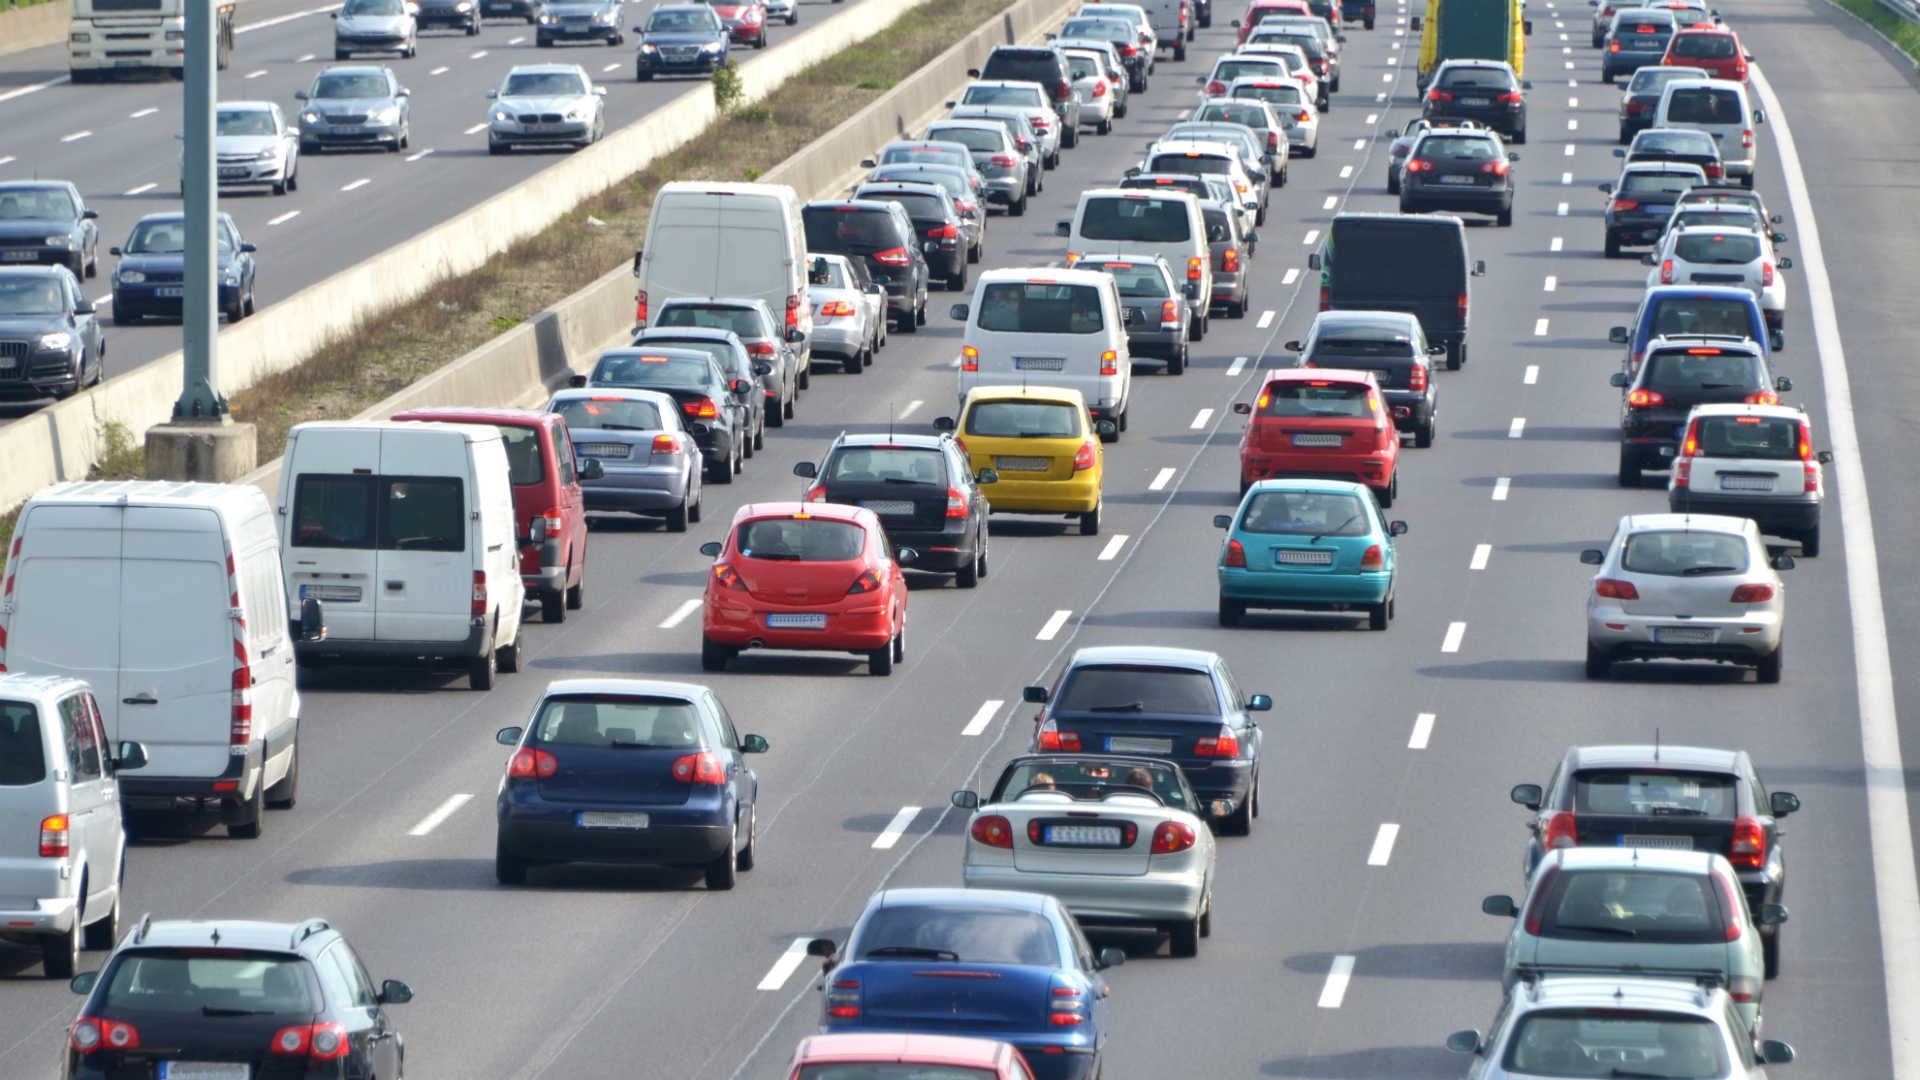 Traffic congestion in Germany